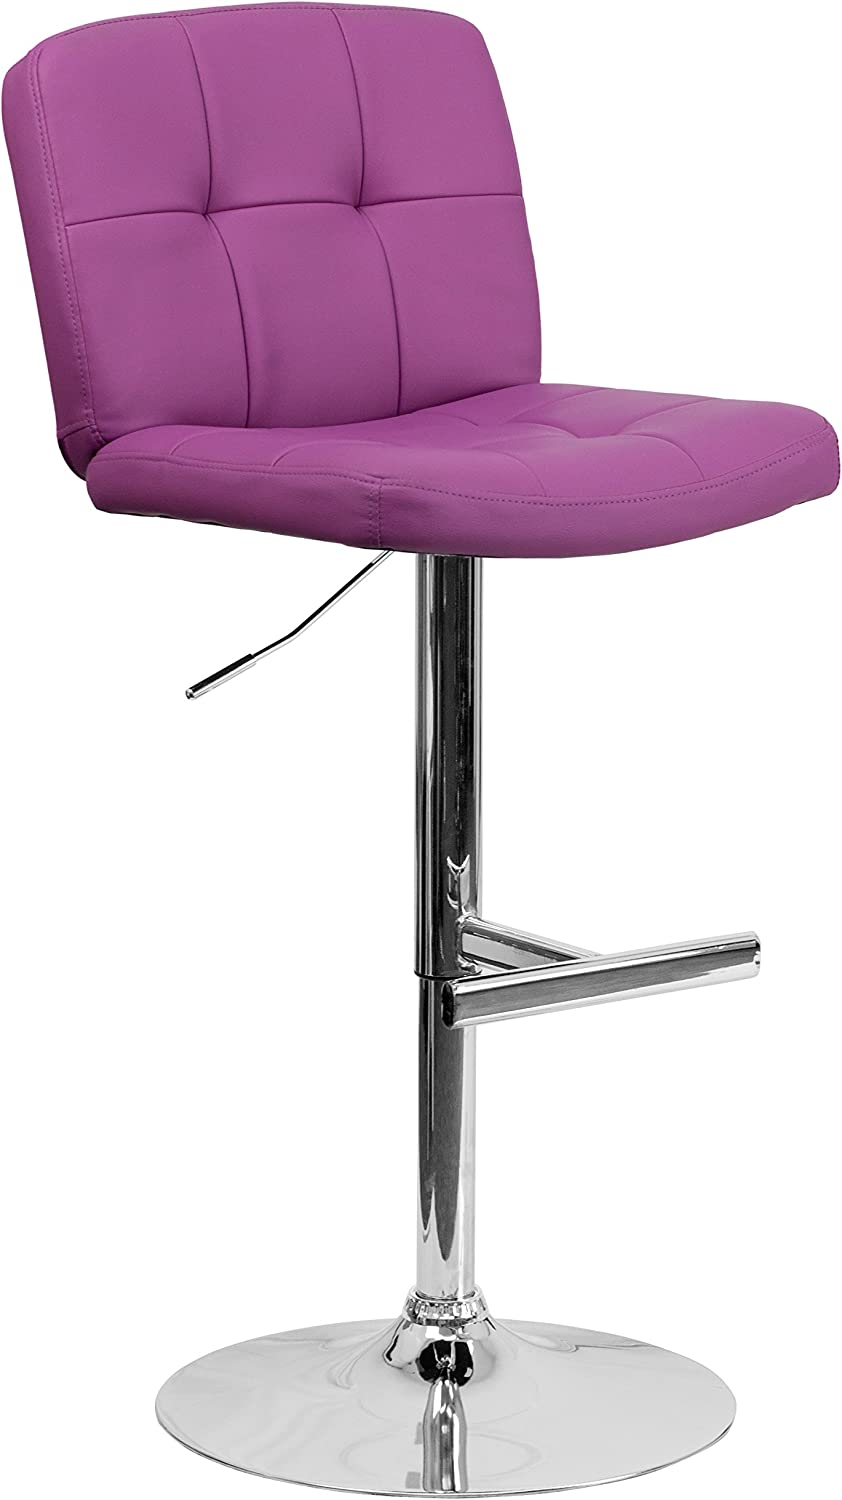 Flash Furniture DS-829-PUR-GG Contemporary Tufted Vinyl Adjustable Height Bar Stool with Chrome Base, Purple